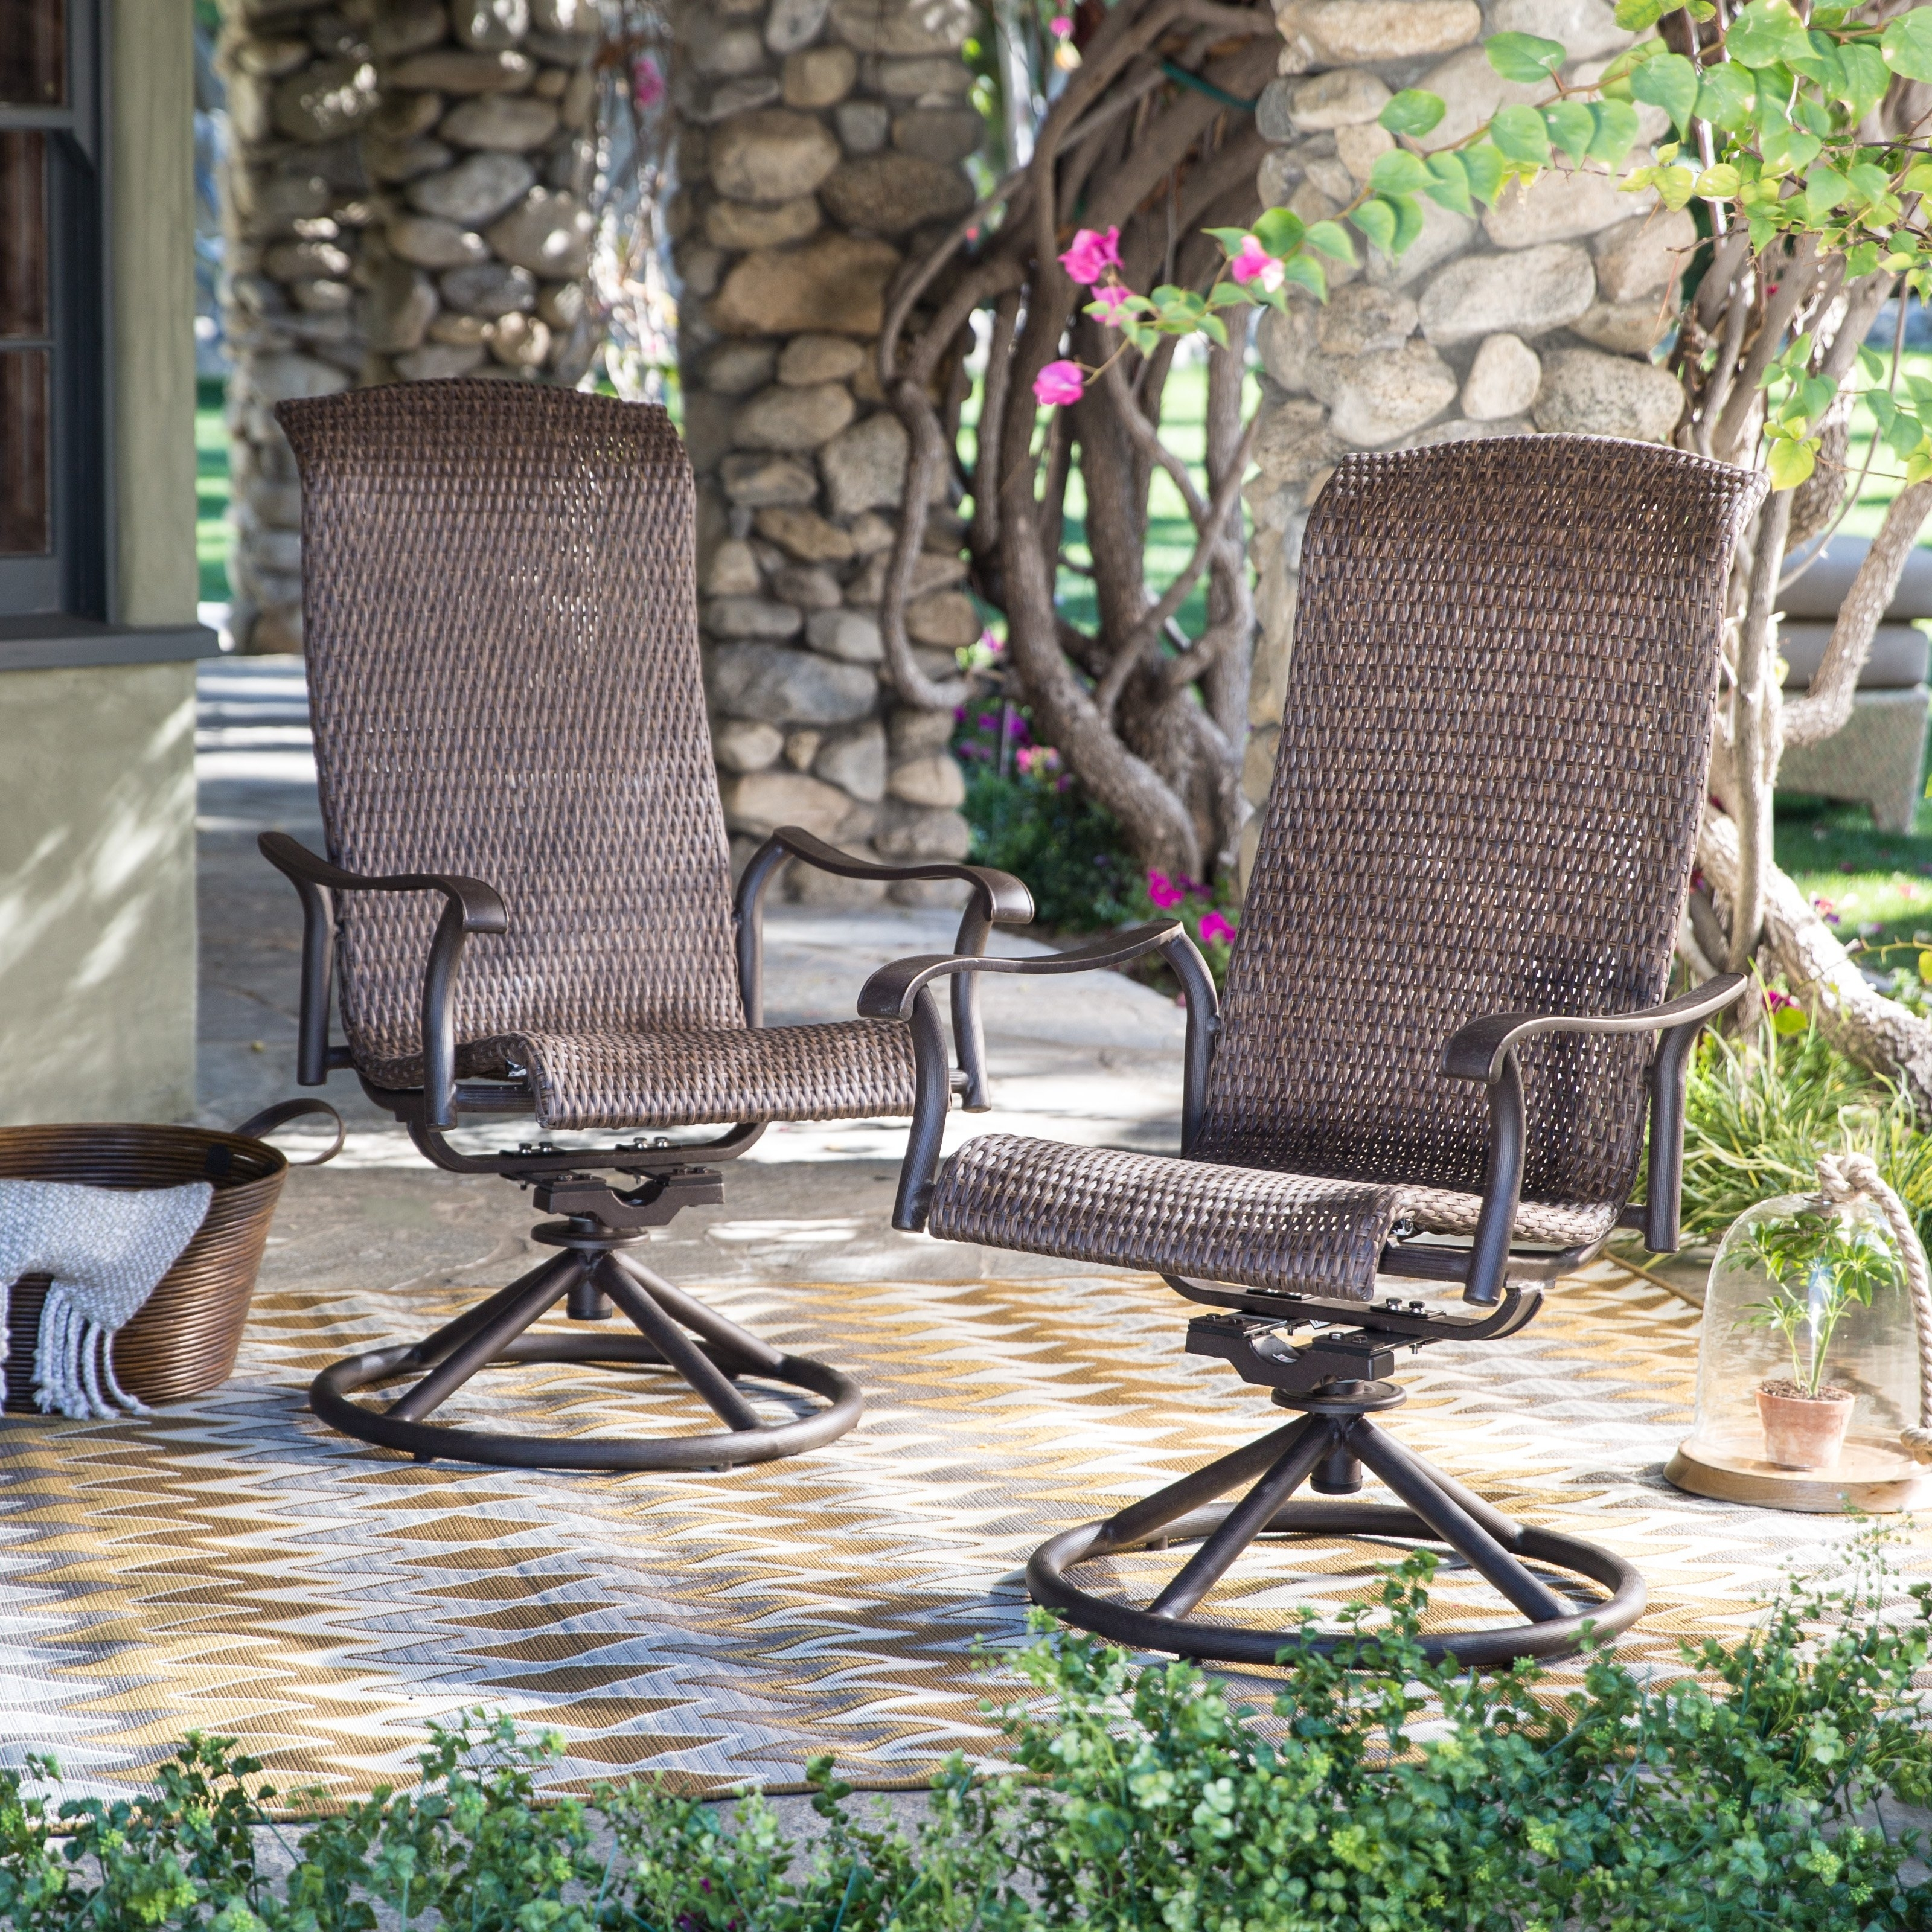 Famous Outdoor Wicker Swivel Rocking Chair – Outdoor Designs Regarding Wicker Rocking Chairs And Ottoman (View 5 of 20)